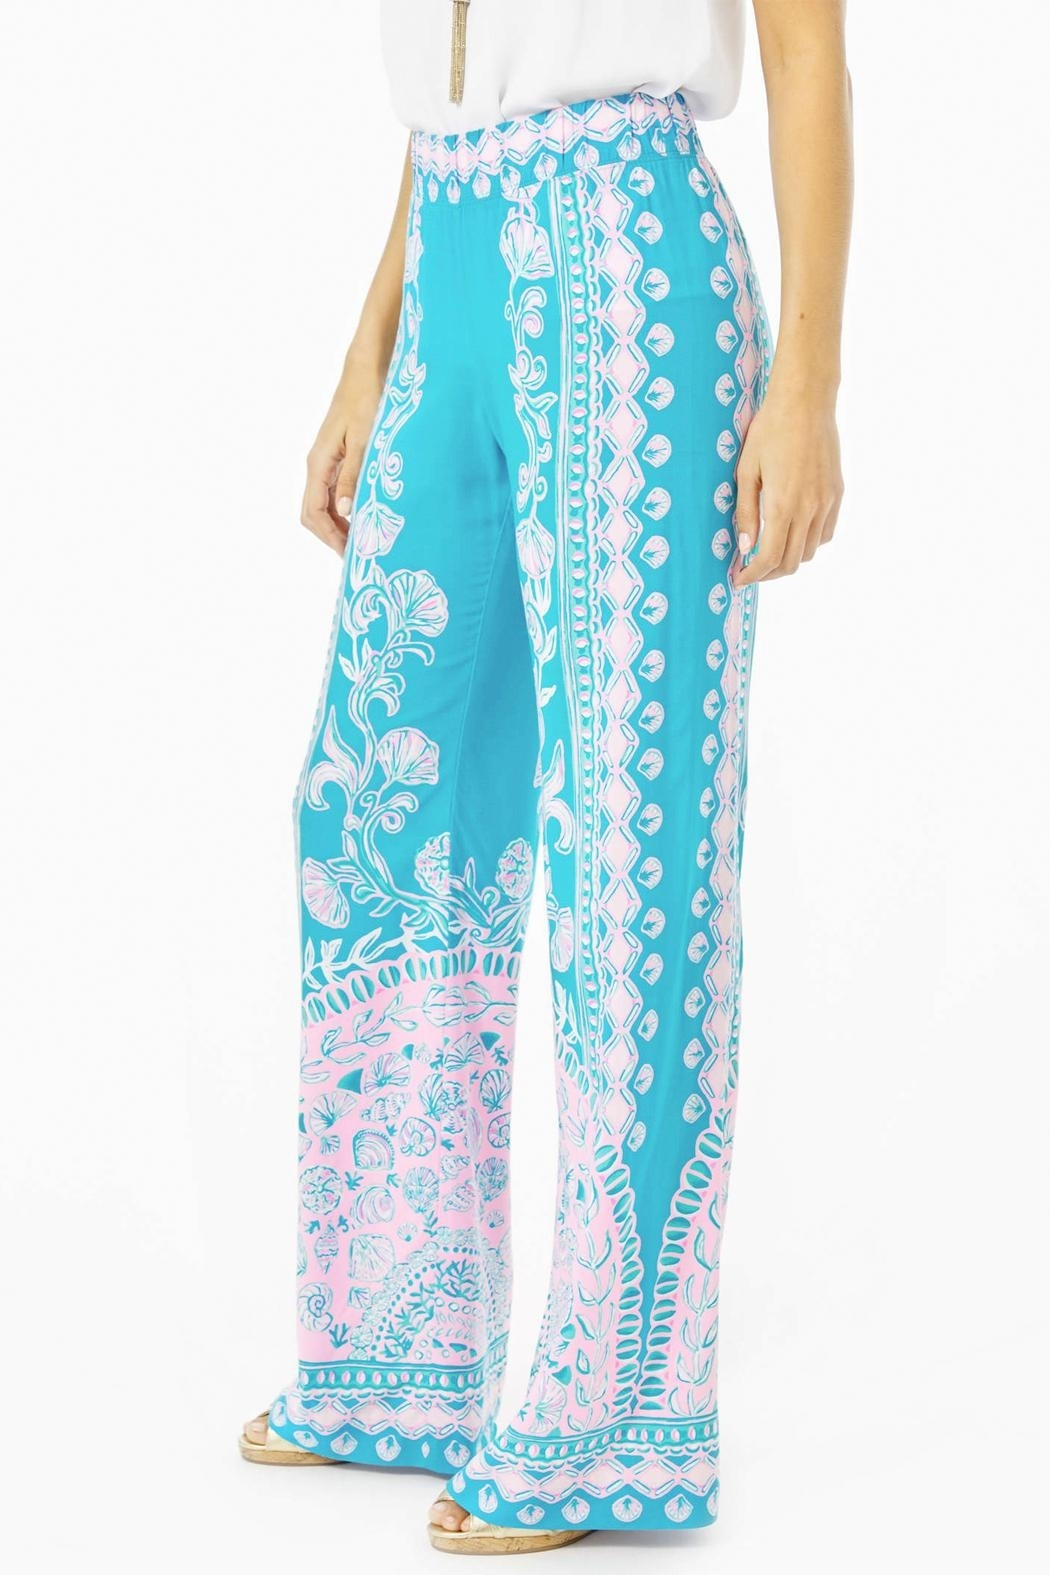 Lilly Pulitzer Bal-Harbour Mid-Rise Palazzo-Pant - Front Full Image